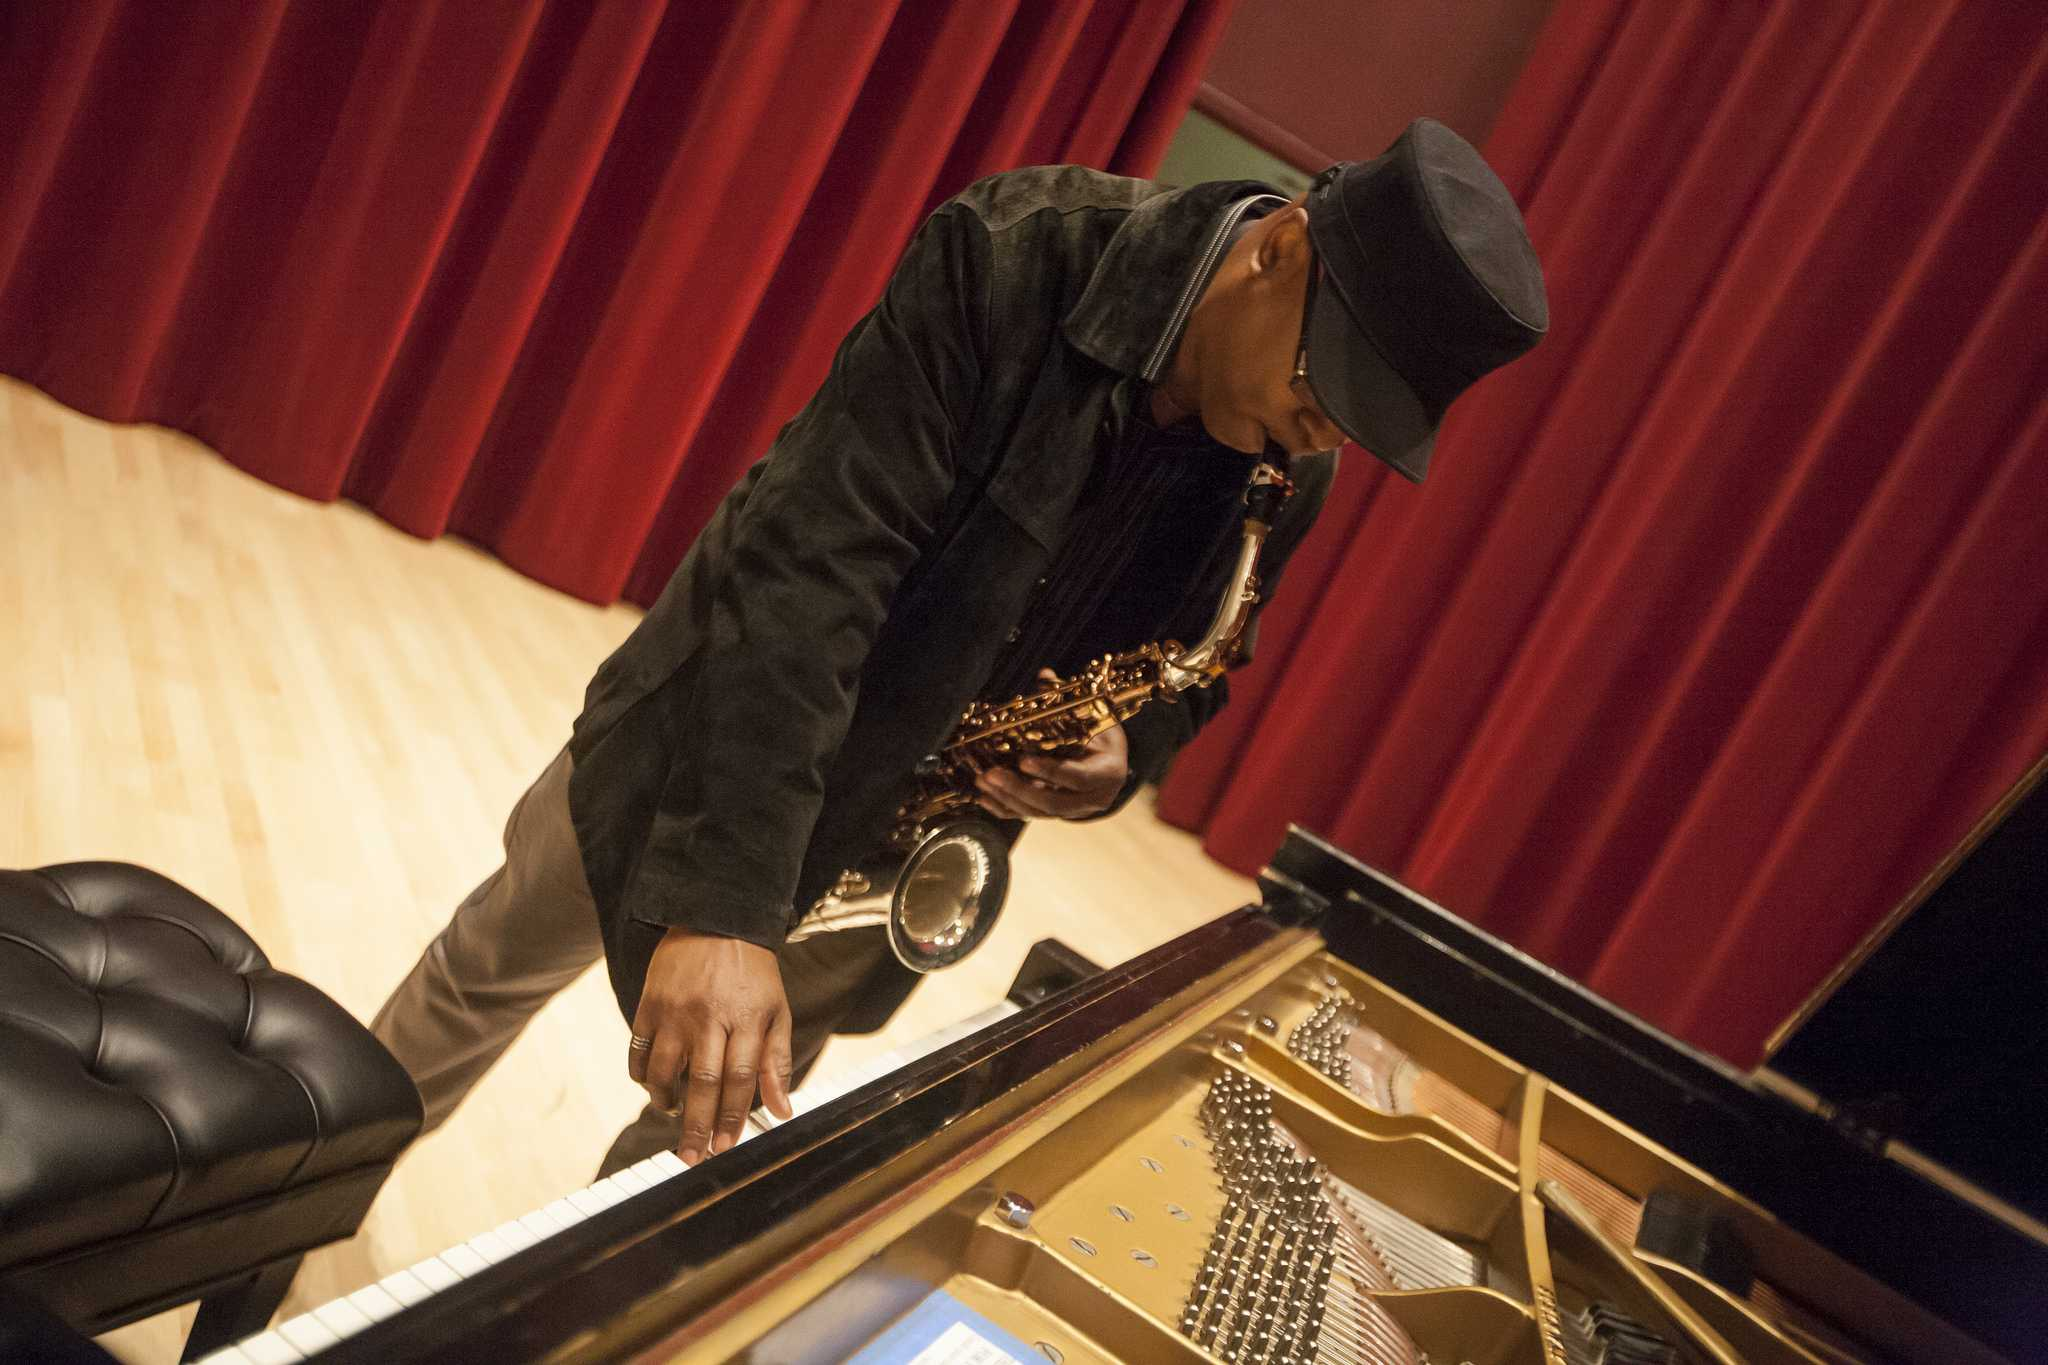 Renowned jazz saxophonist, Greg Osby, tunes his instrument before conducting a jazz master class in Knuth Hall Wednesday, Oct. 15, 2014.